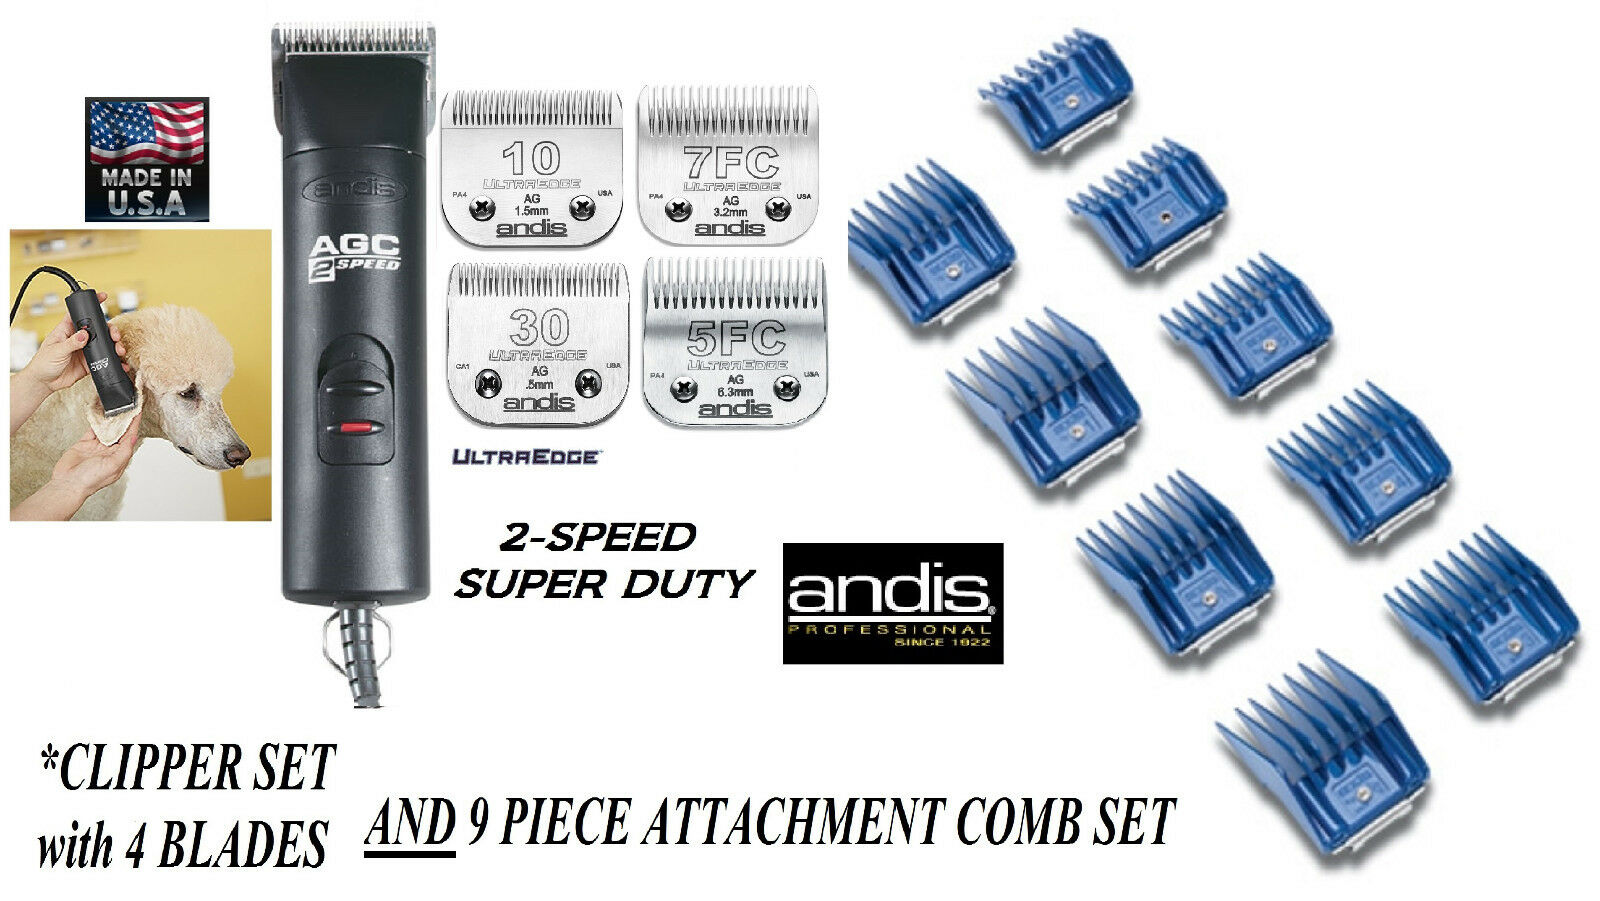 Andis Andis Andis SUPER PRO 2-Speed Clipper,4 ULTRAEDGE BLADES,9 GUIDE COMB SETPET Grooming 32ad8b